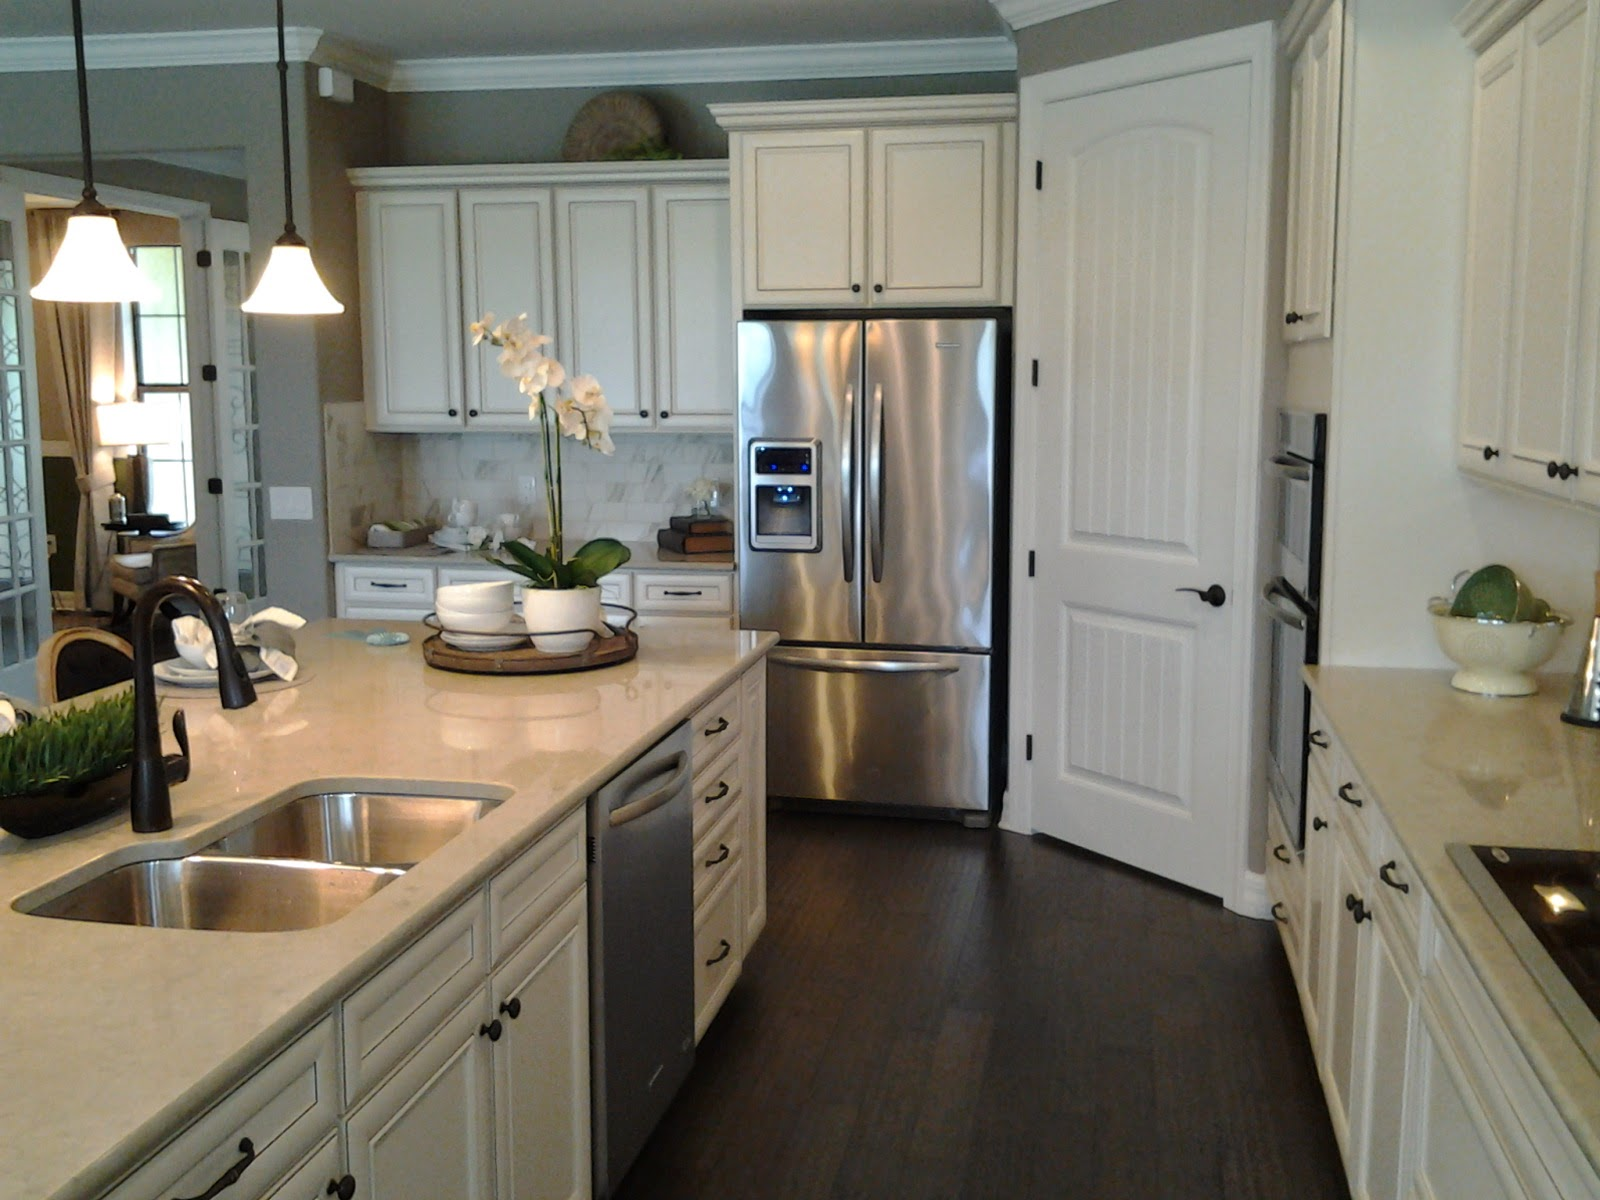 Florida new homes april 2015 for Kitchen cabinets venice fl